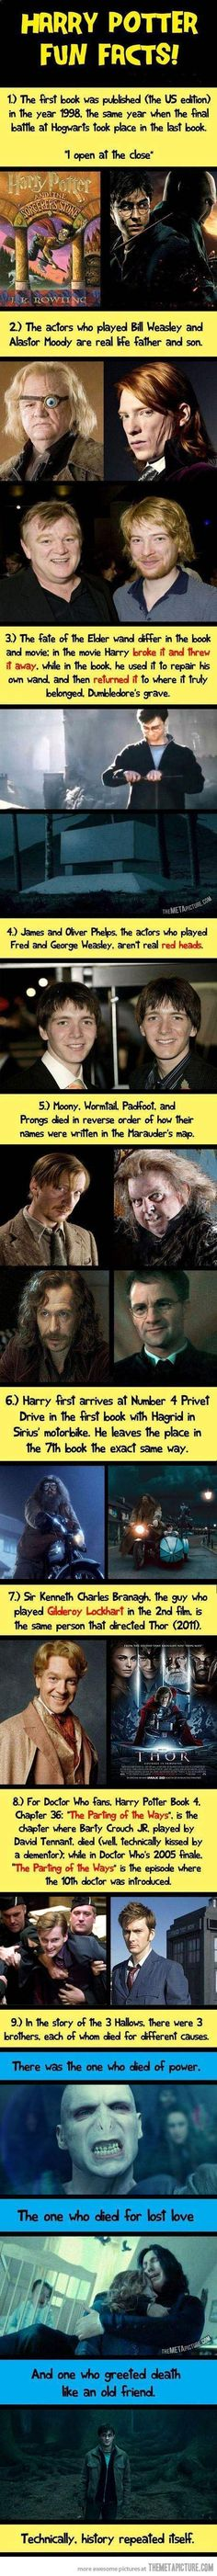 Harry Potter facts…